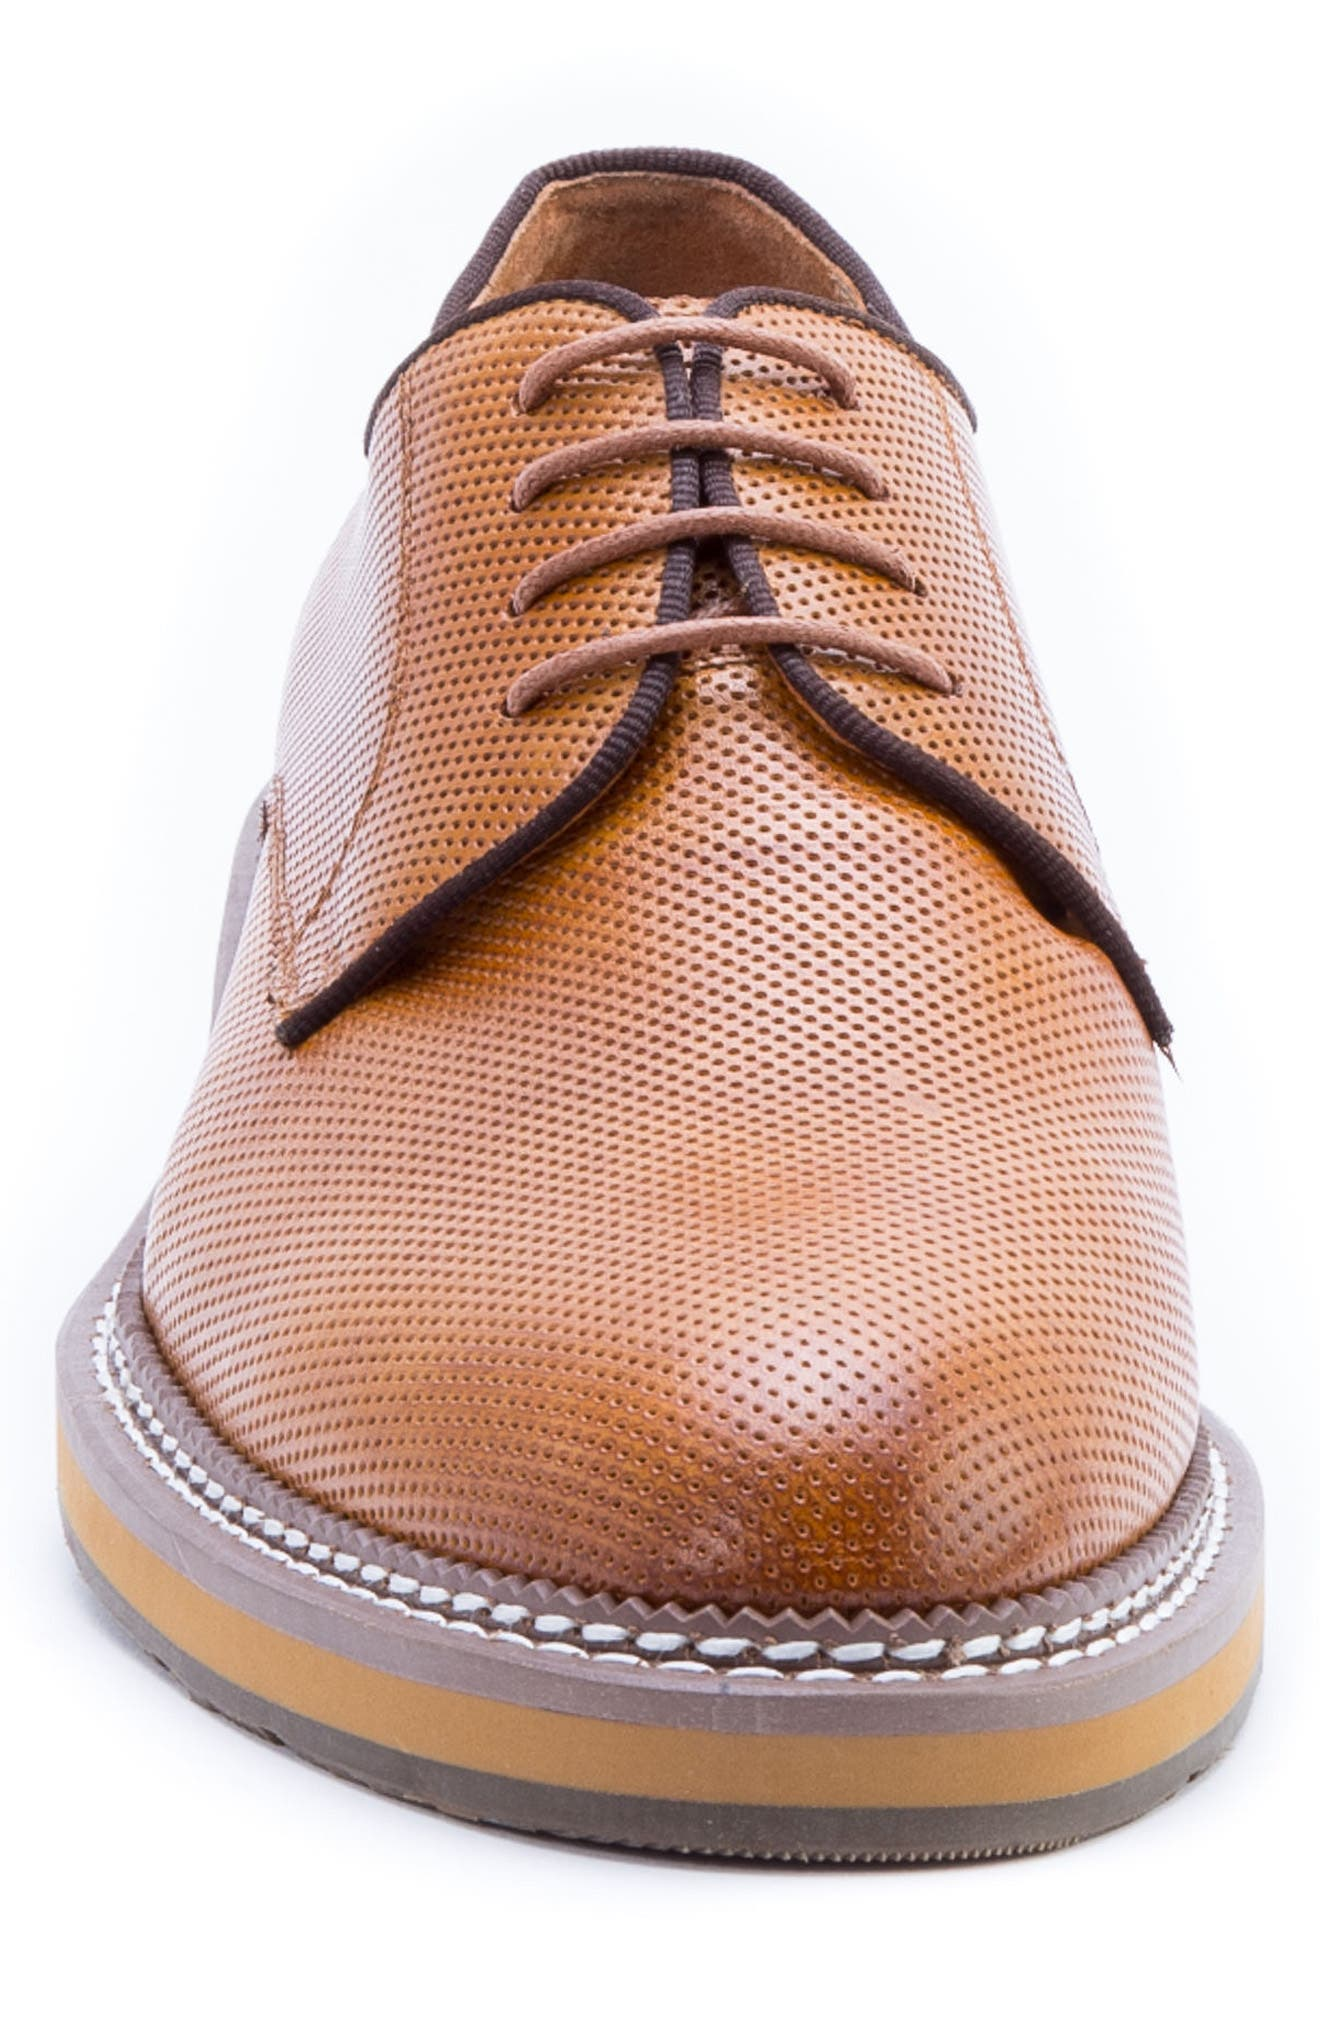 Monticello Perforated Plain Toe Derby,                             Alternate thumbnail 4, color,                             Cognac Leather